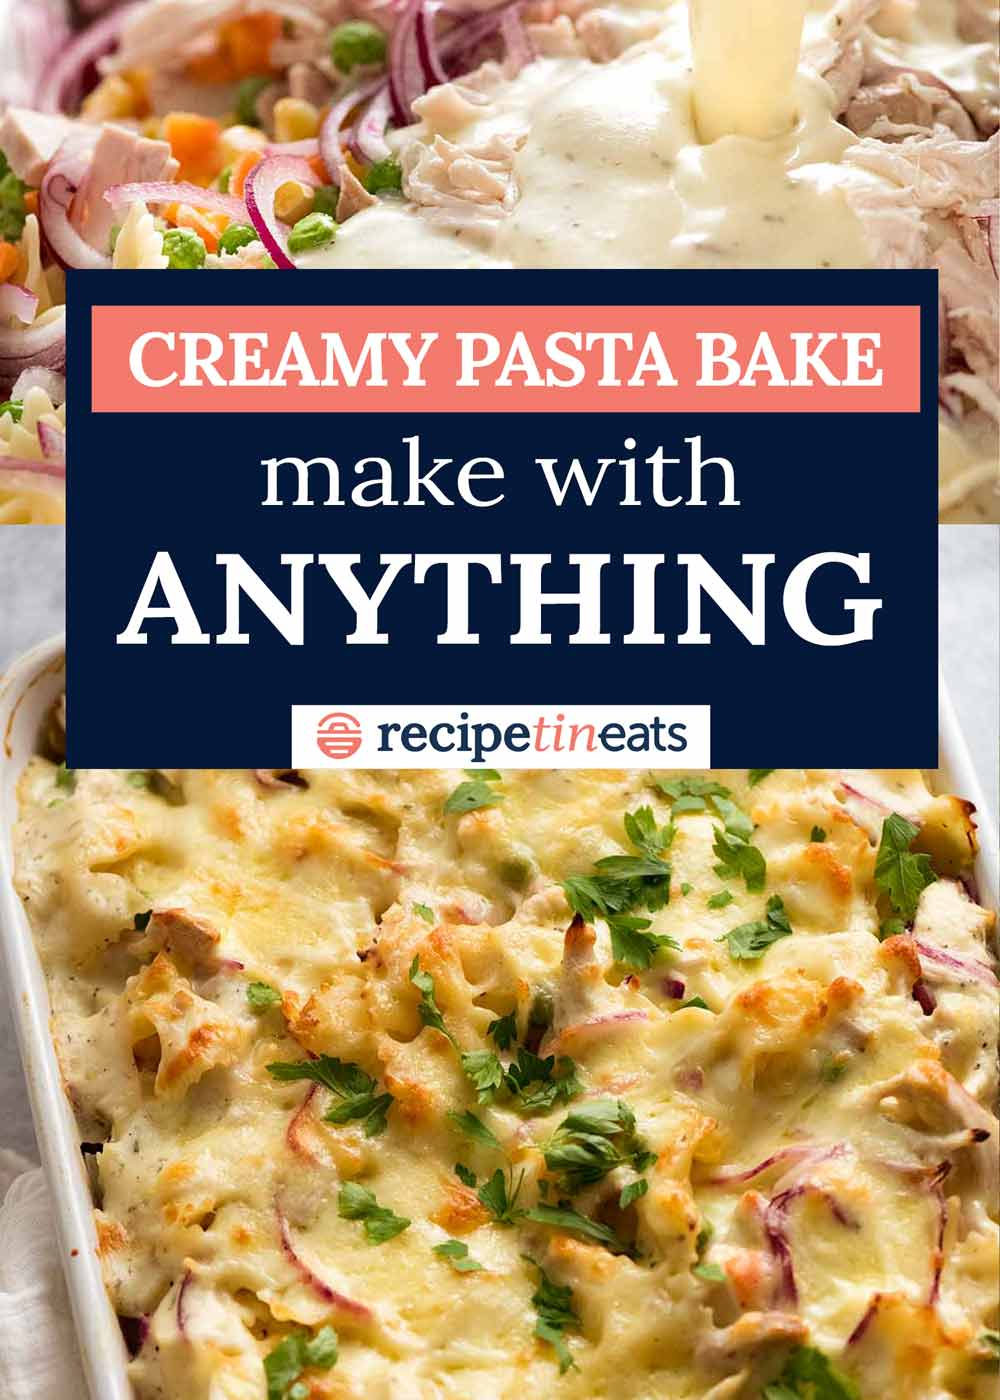 Creamy Pasta Bake Formula Make With Anything Recipetin Eats